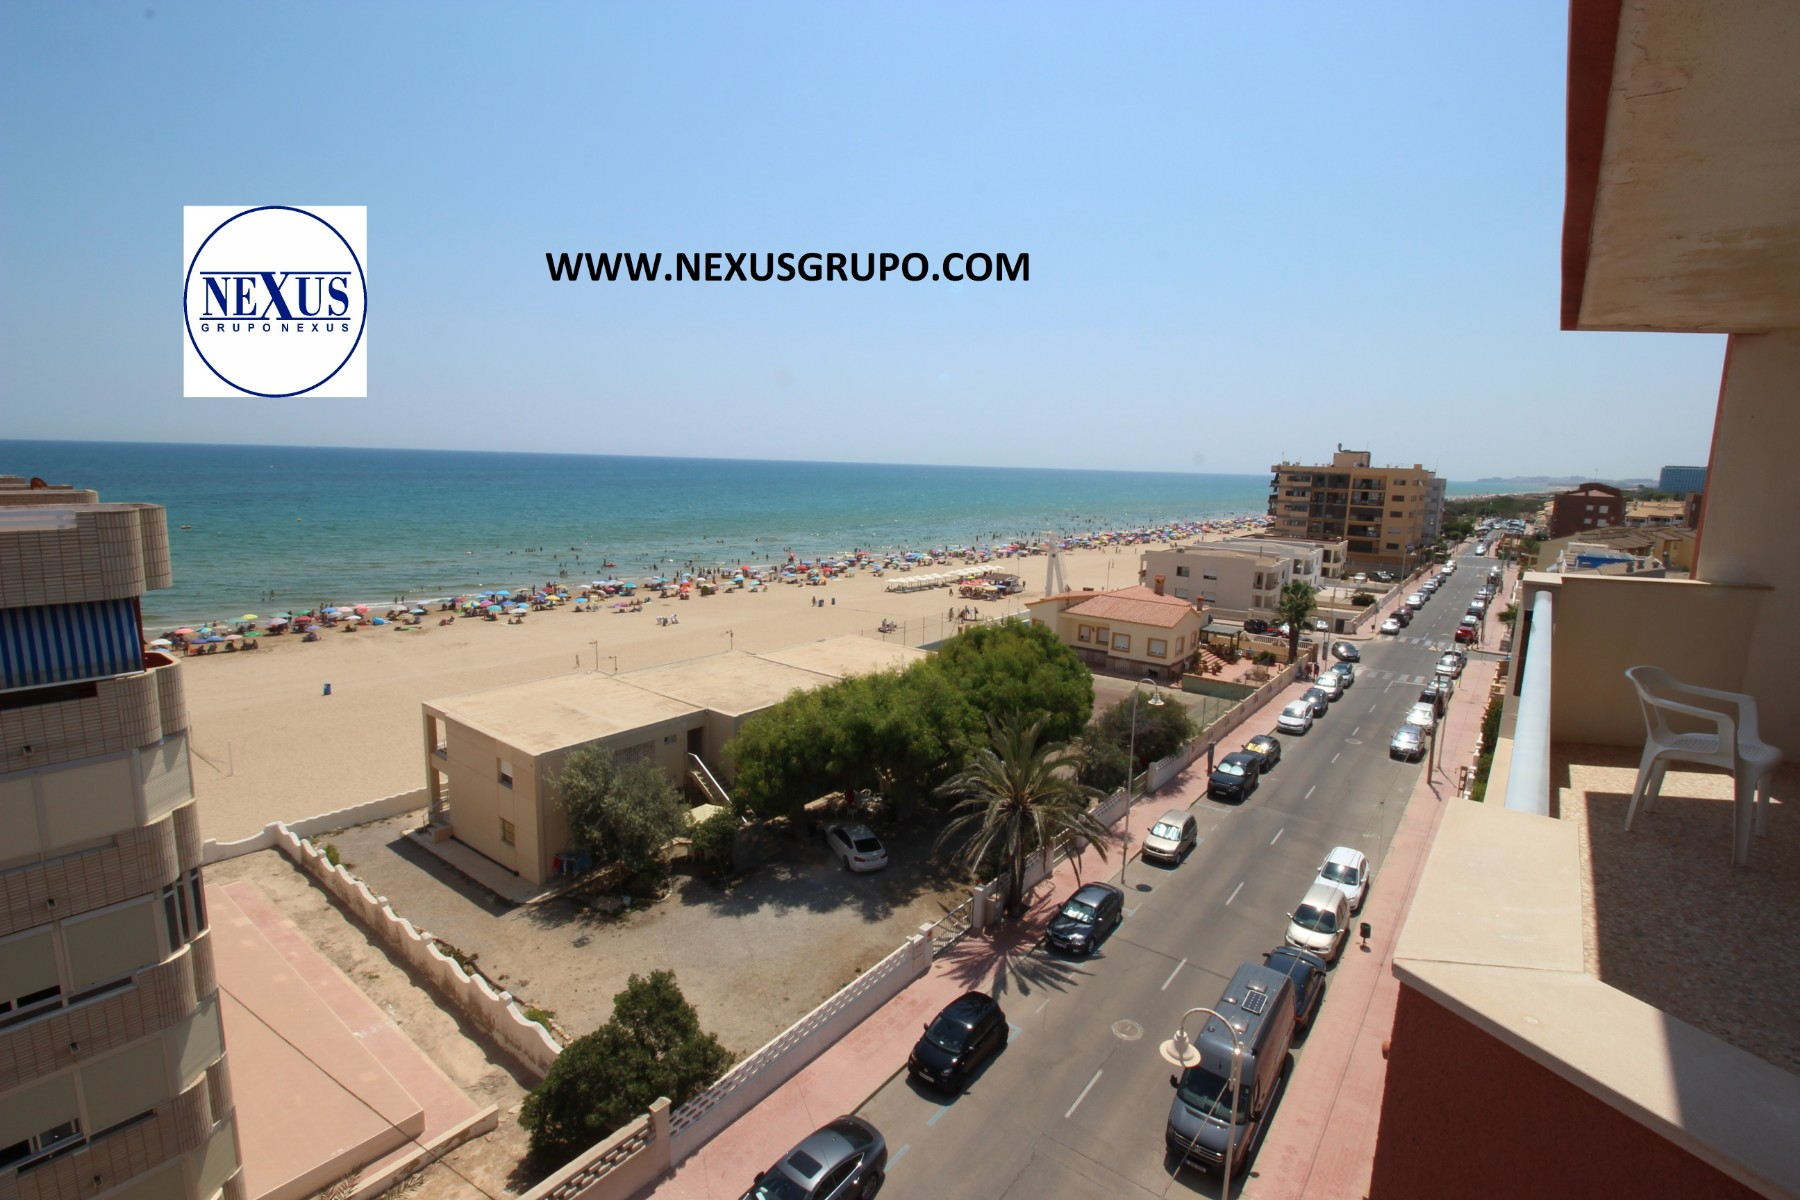 NEXUS GROUP REAL ESTATE SELLS AN EXCELLENT APARTMENT IN SEAFRONT in Nexus Grupo